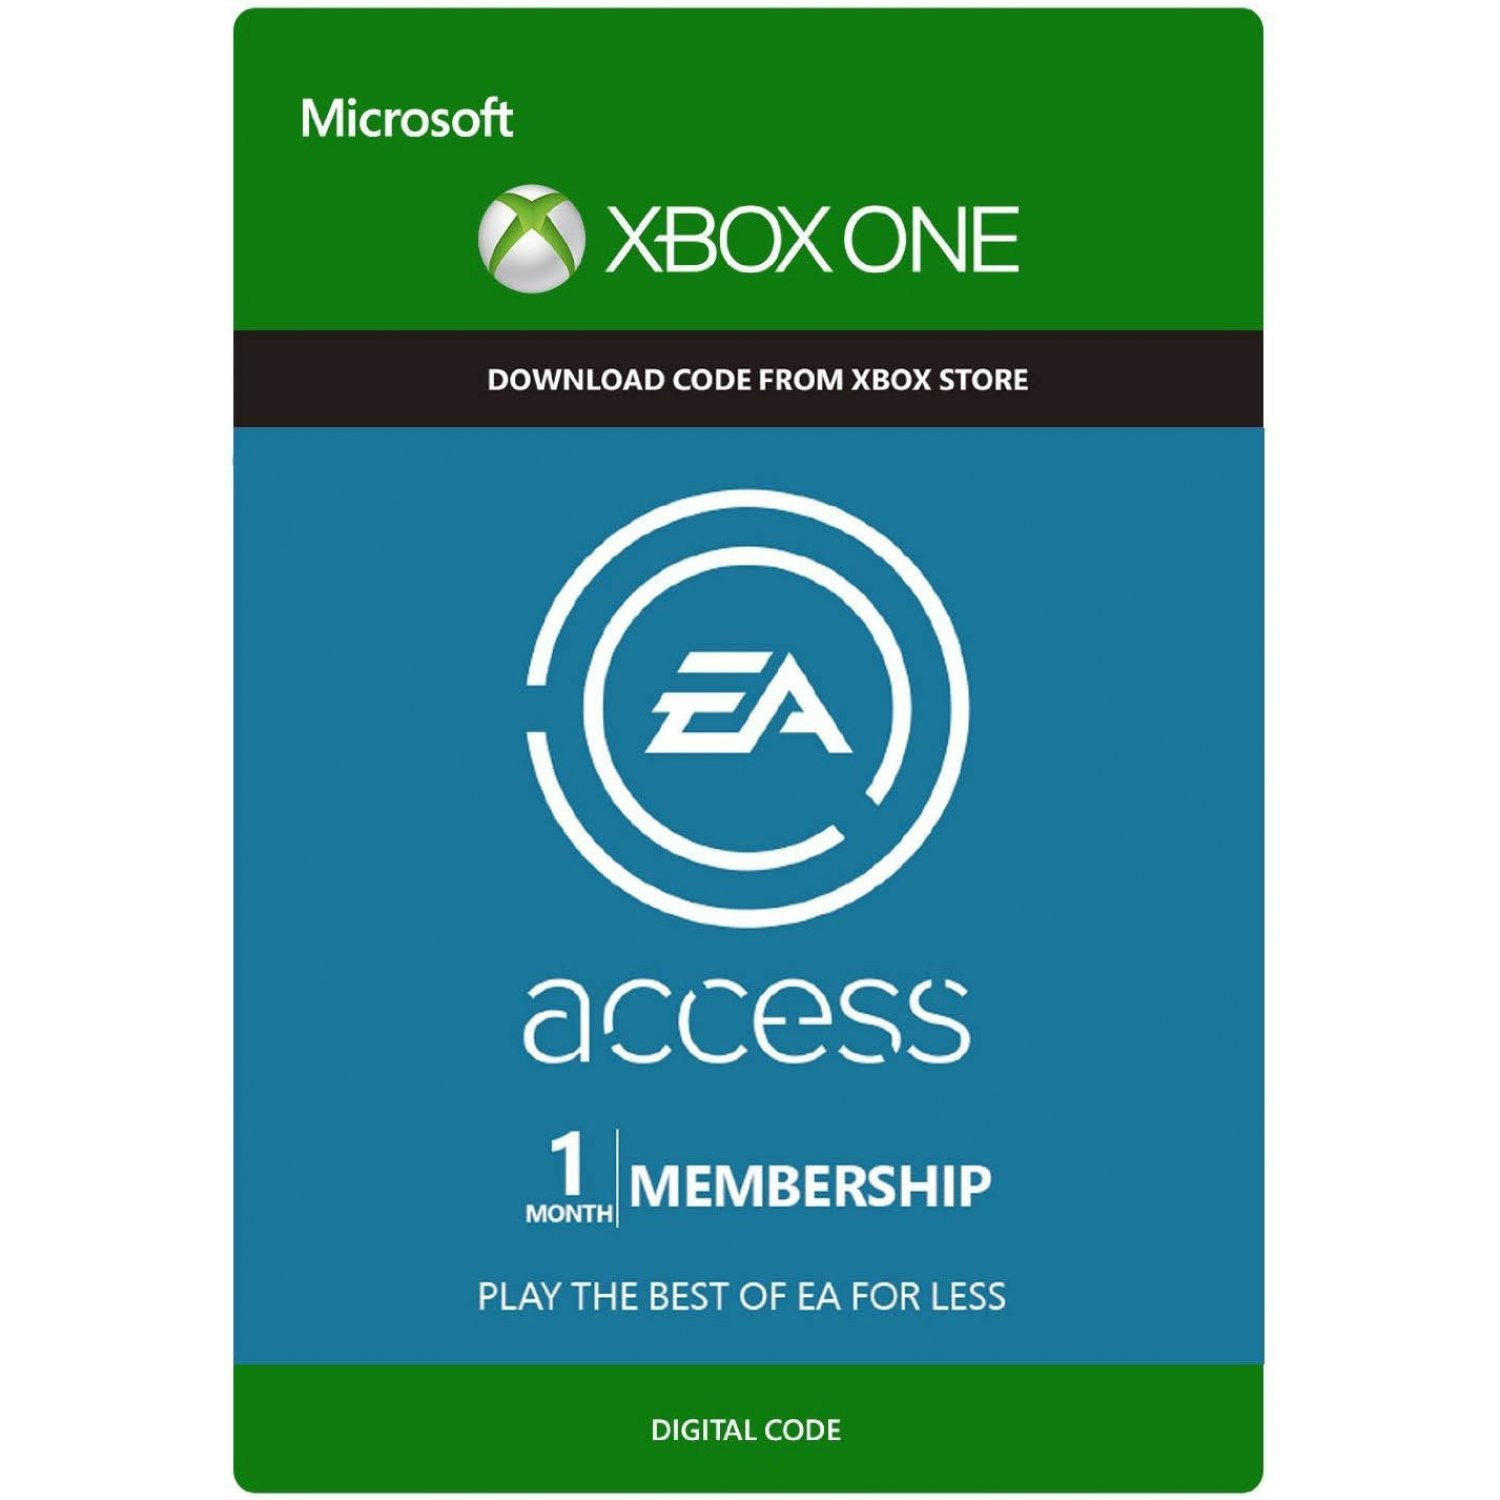 how to cancel ea access subscription on xbox one